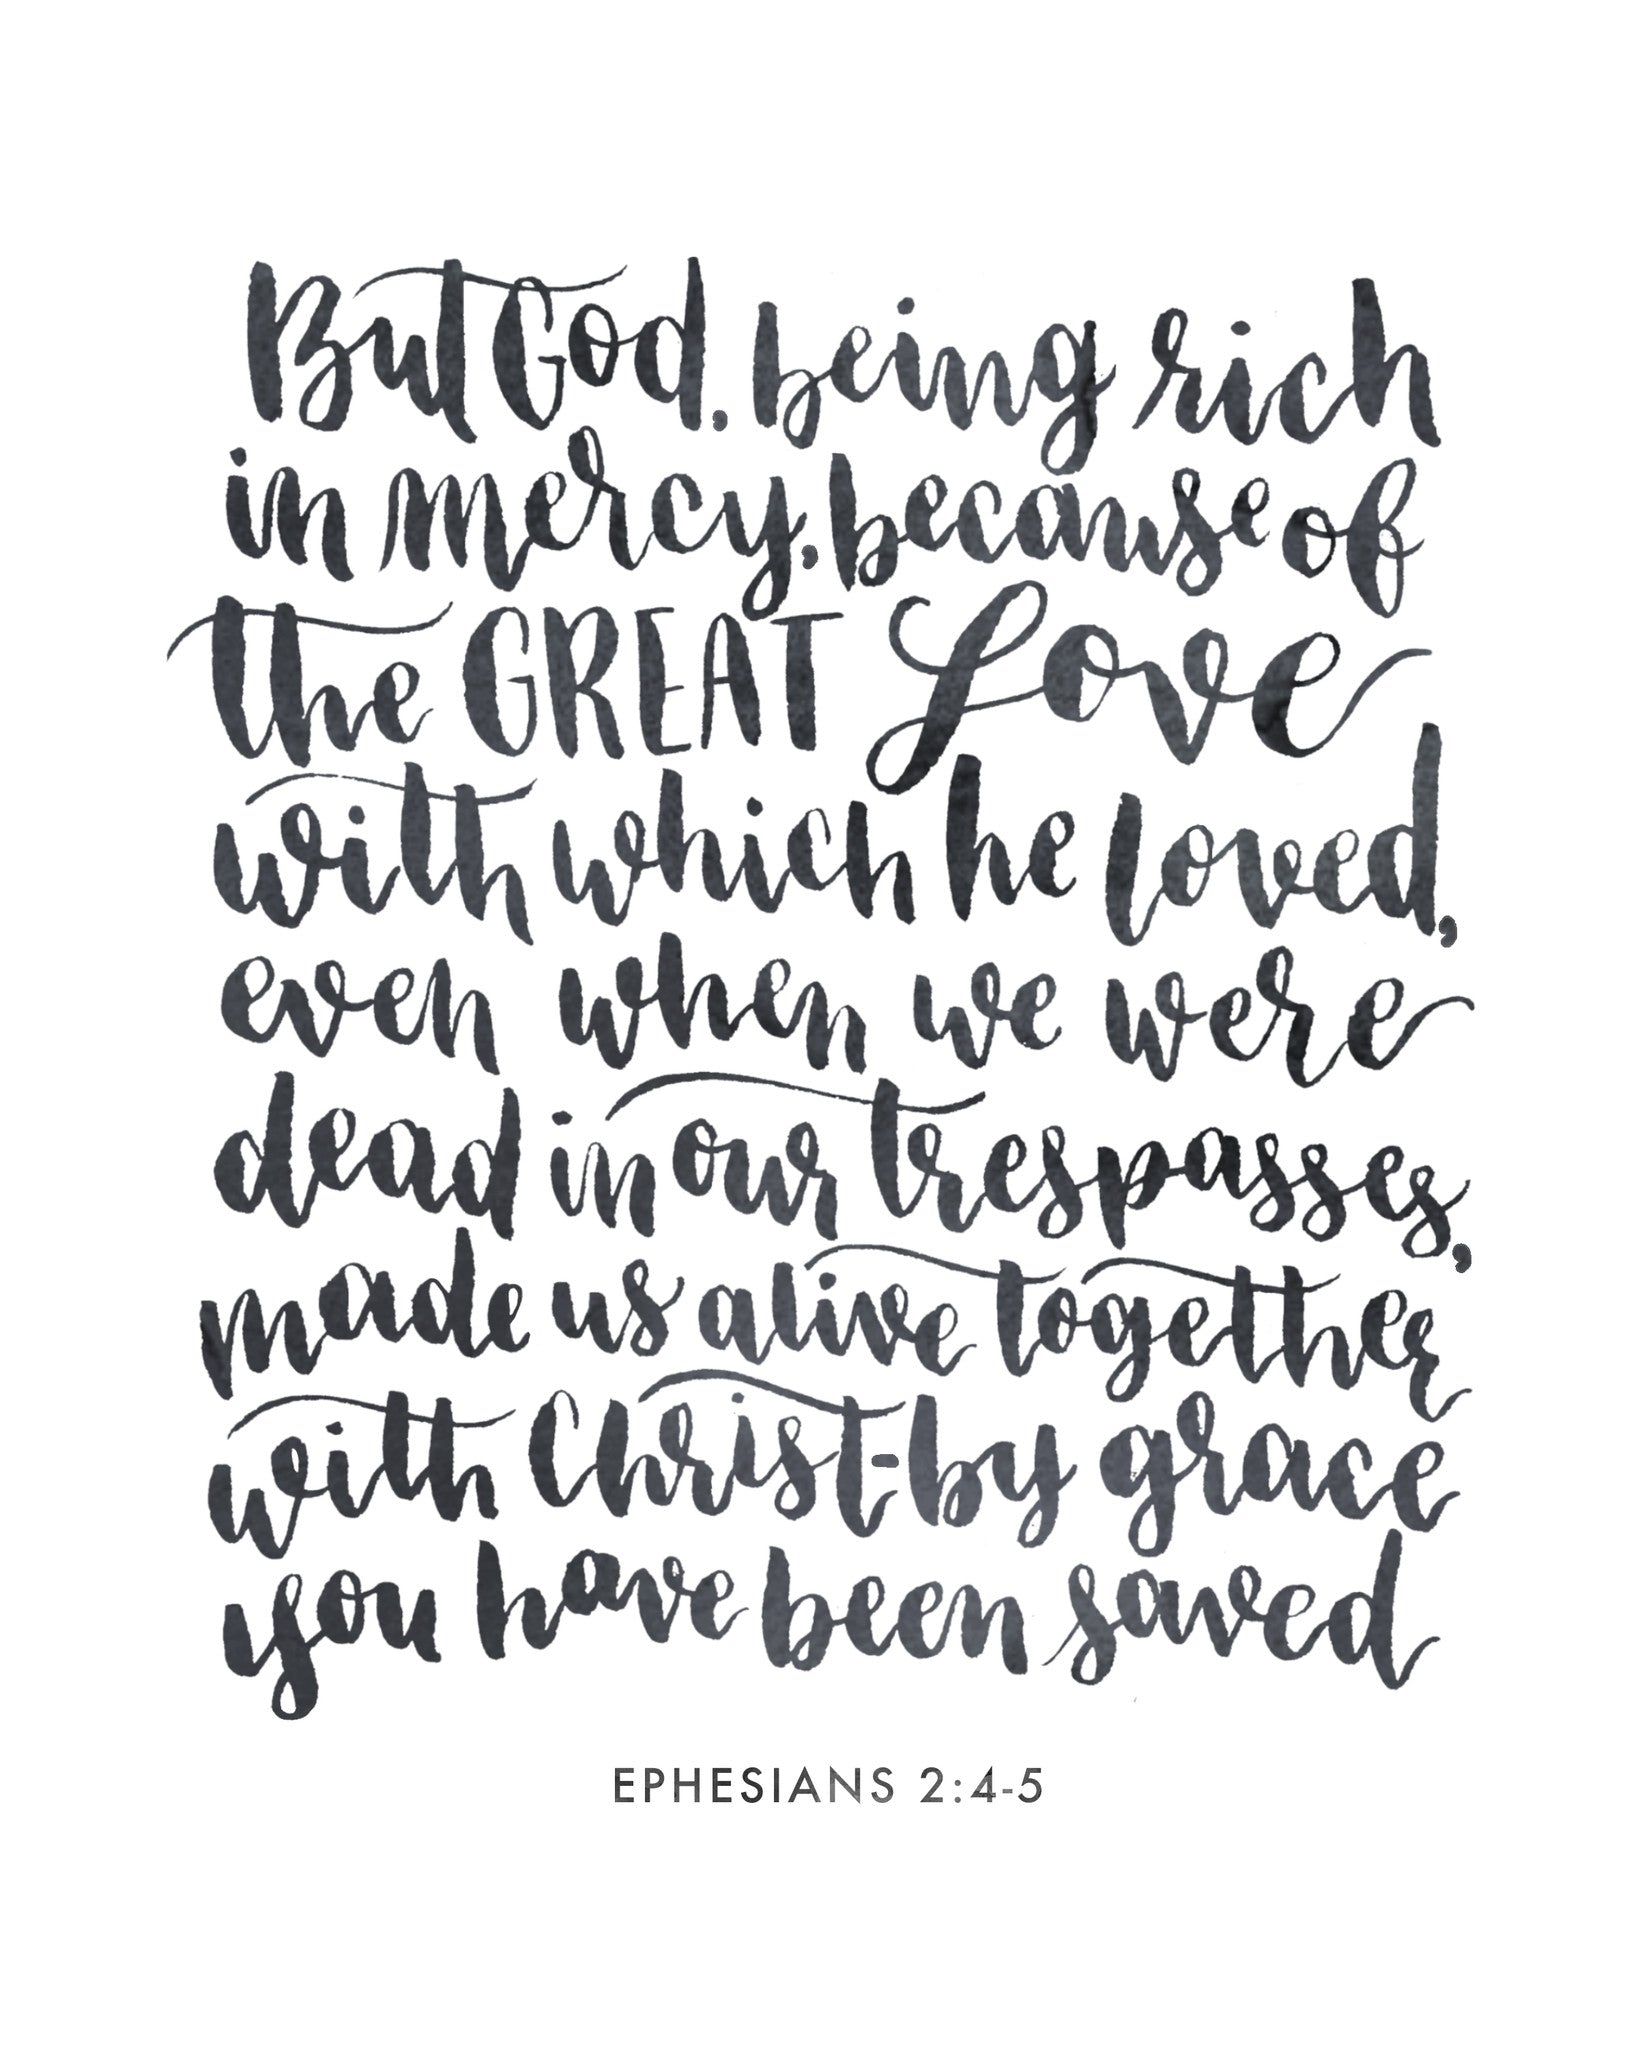 photograph relating to Who I Am in Christ Printable identified as I Am Alive within Christ Ephesians 2:4-5 Totally free Printable